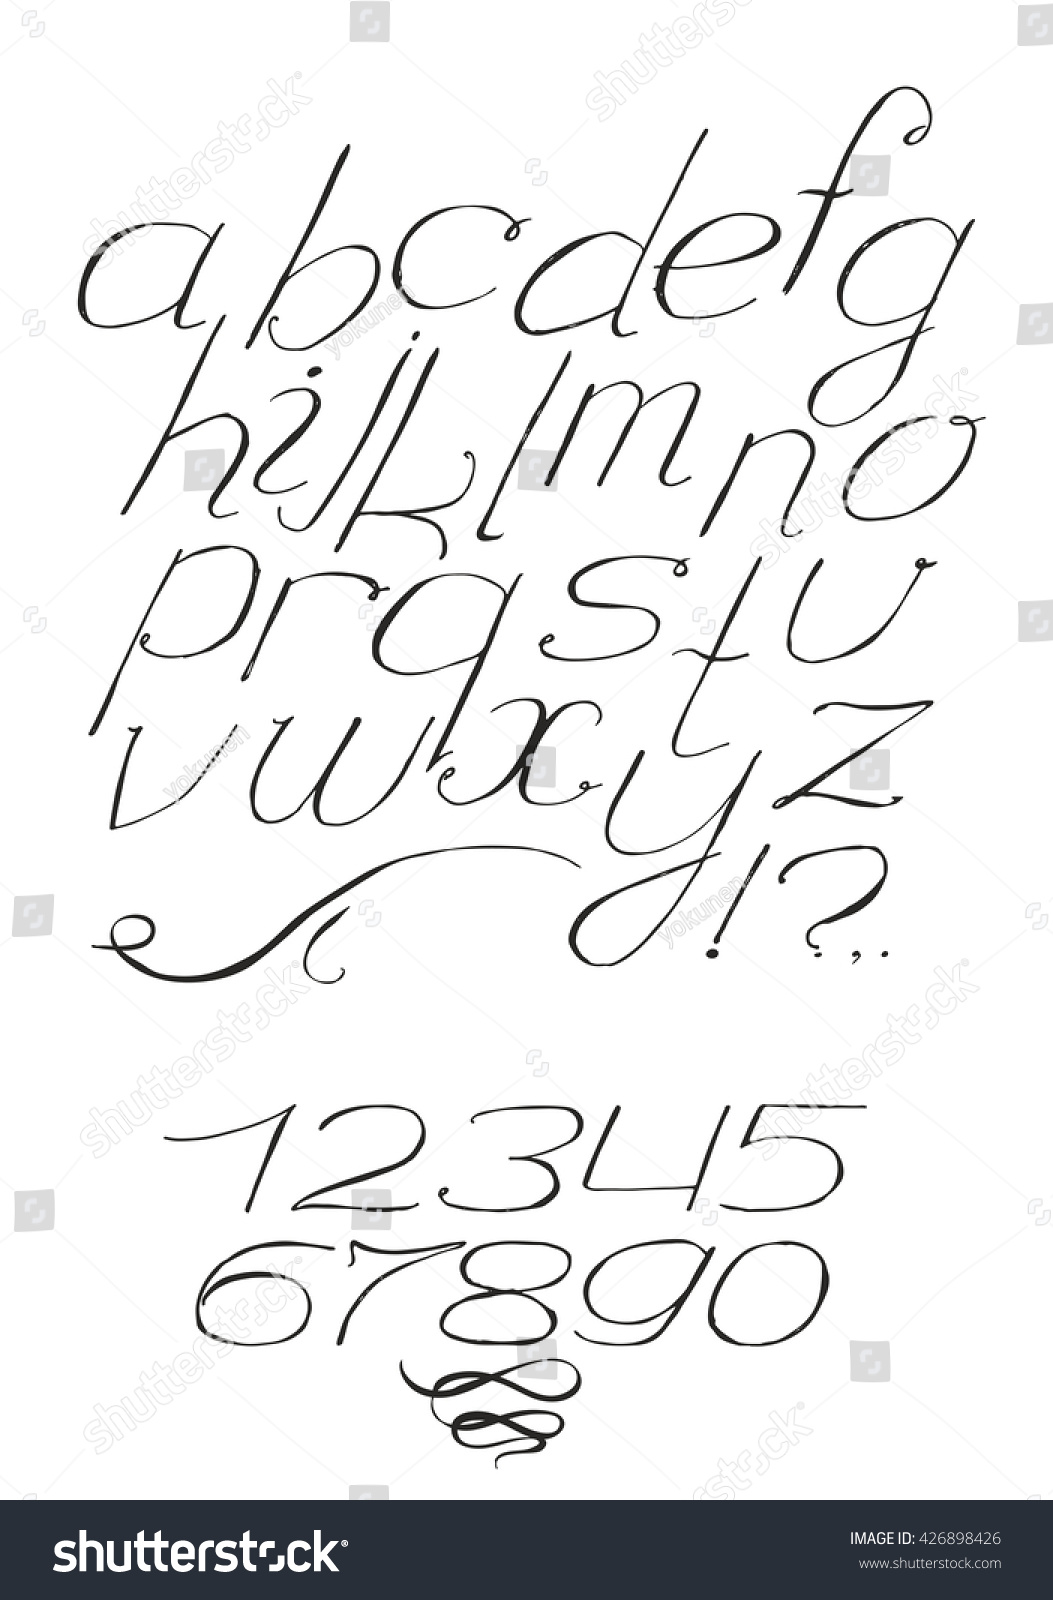 script font cursive black on white stock vector 426898426